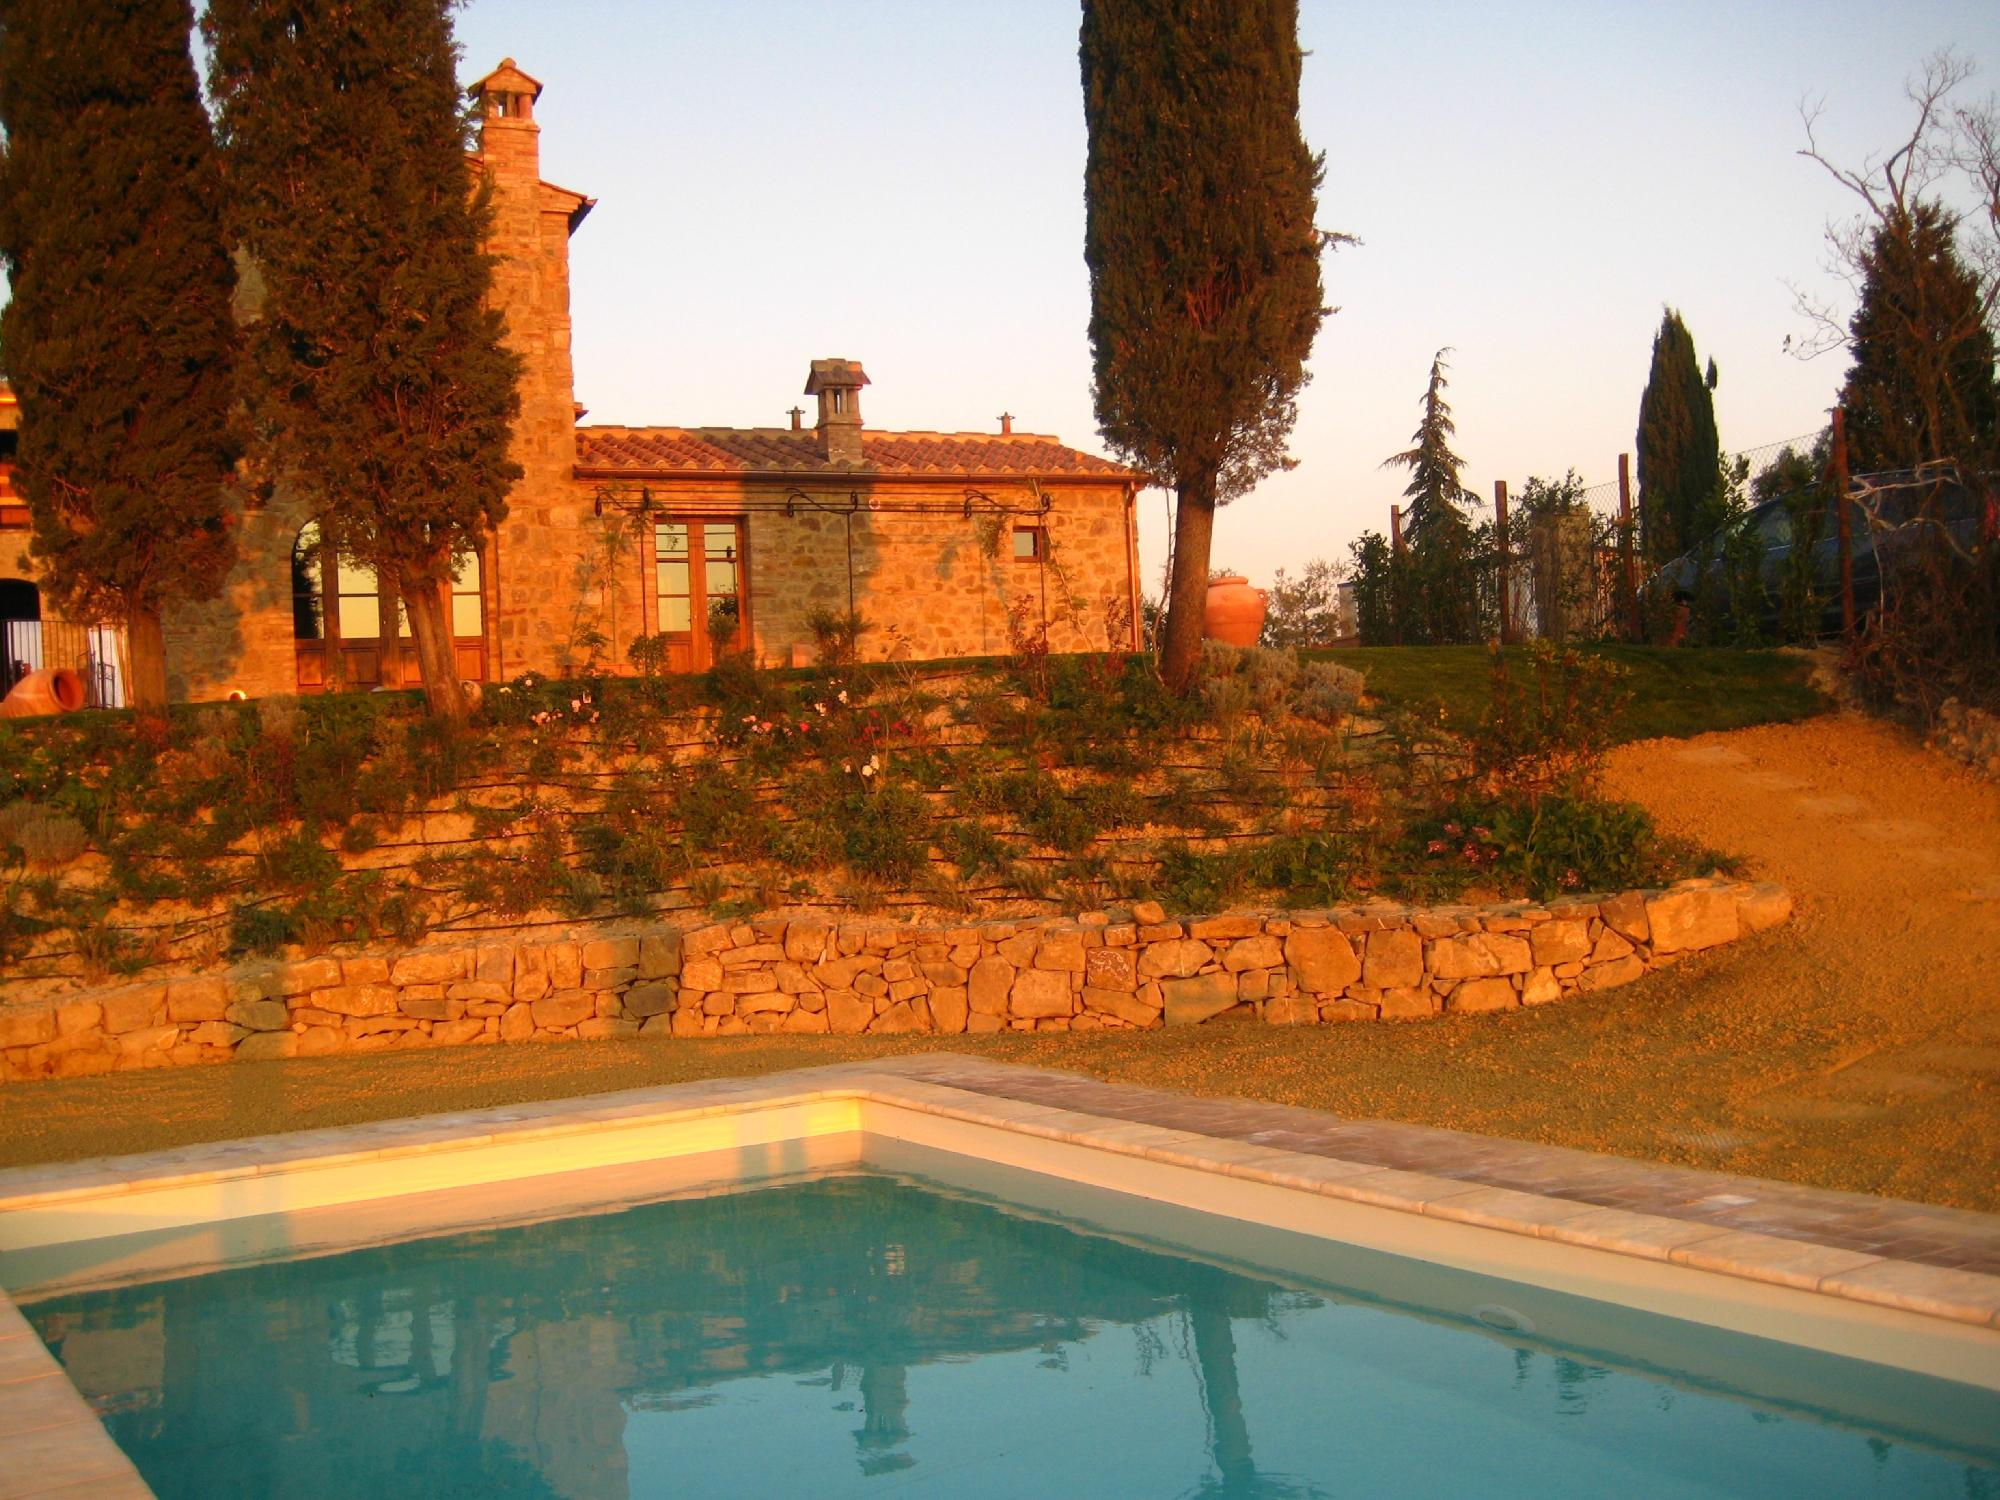 San Giovanni d'Asso Italy  city photo : Podere Ampella San Giovanni d'Asso, Italy Tuscany Villa Reviews ...